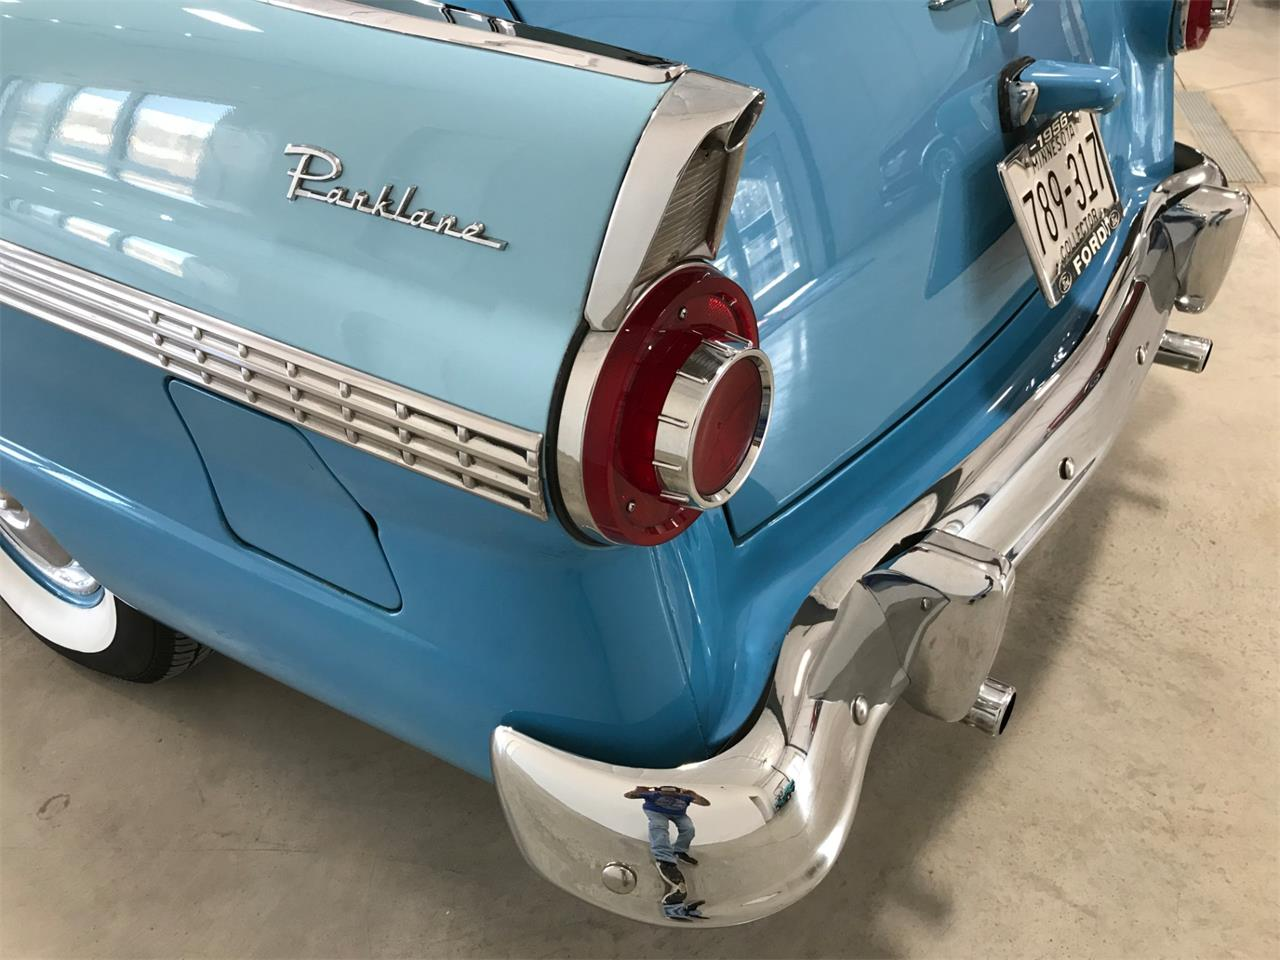 Large Picture of '56 Ford Parklane Offered by High Rollers Hot Rods and Classics - KZ4C